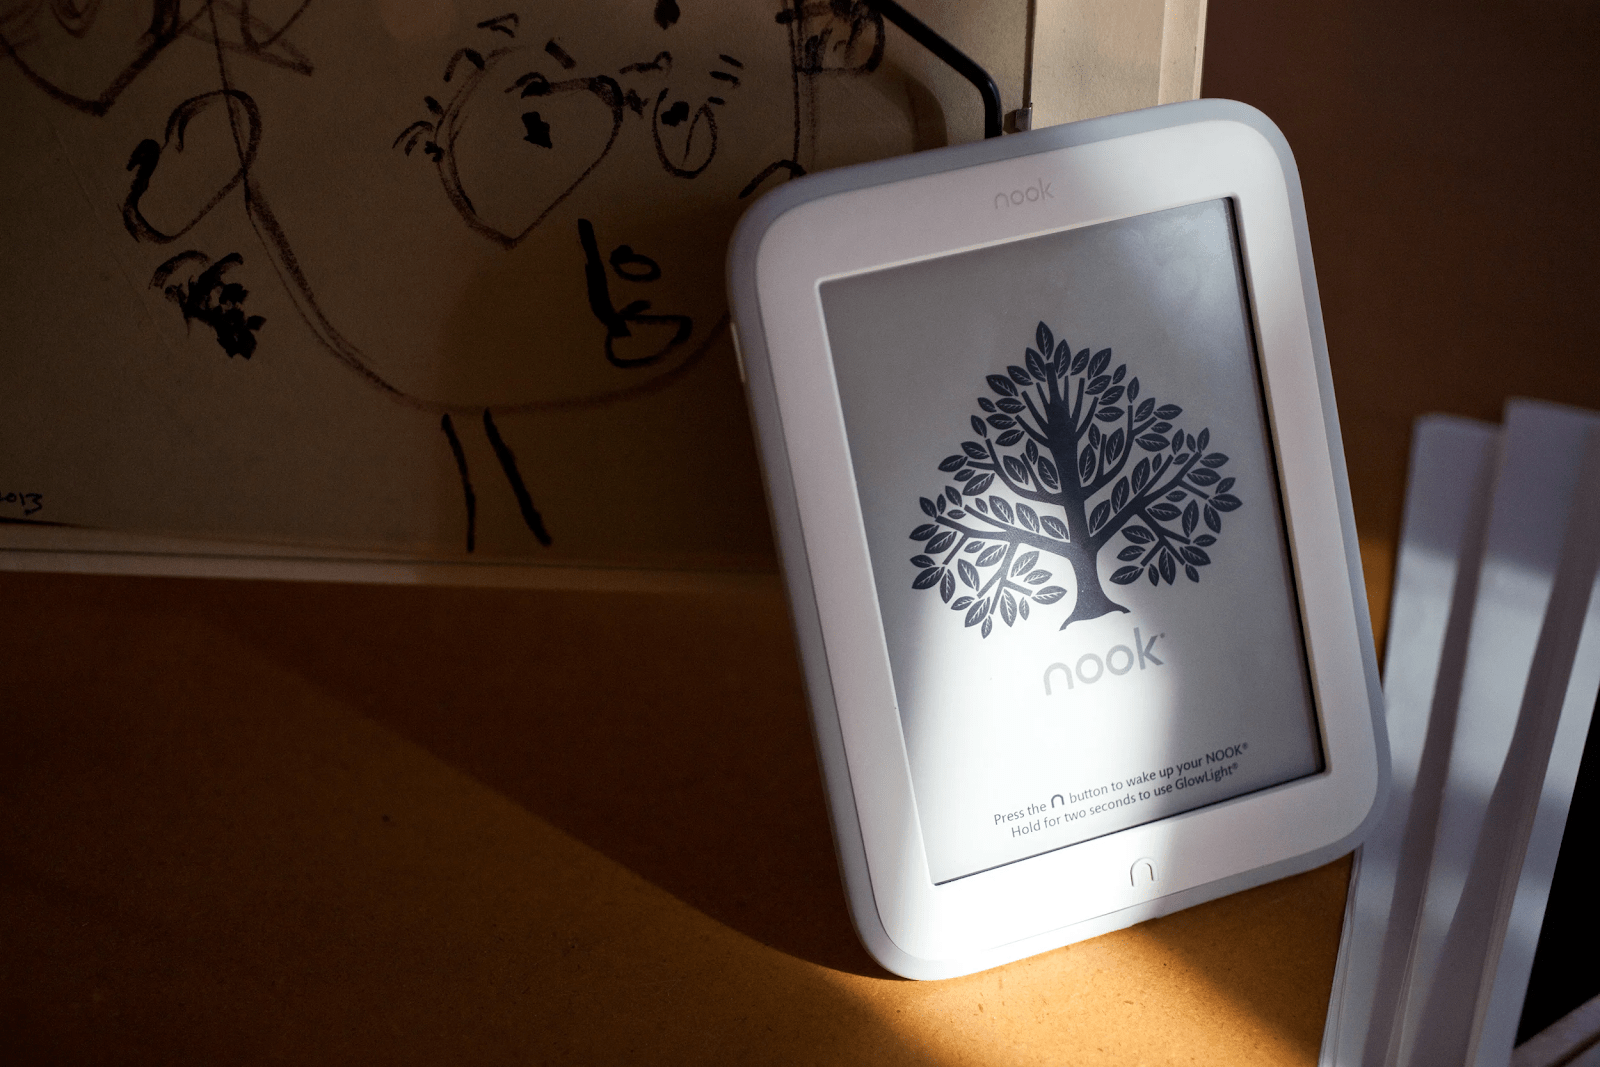 Kindle Vs Nook - Don't Buy Without Reading This Comparison 3